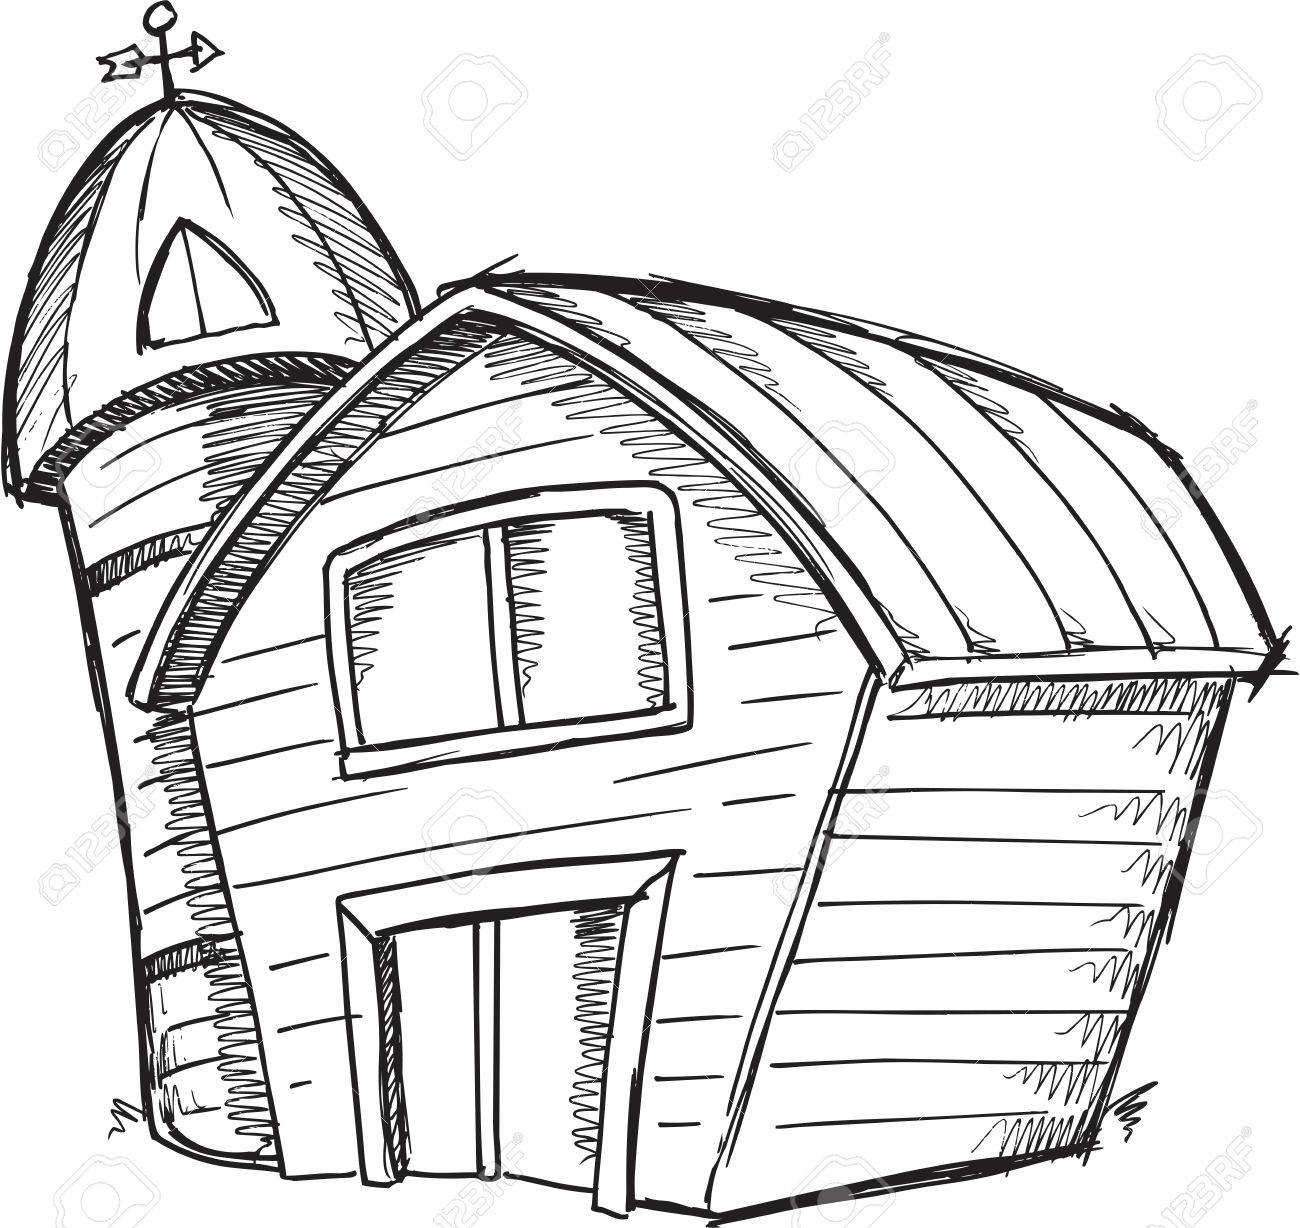 1300x1228 Doodle Sketch Barn Vector Illustration Art Royalty Free Cliparts